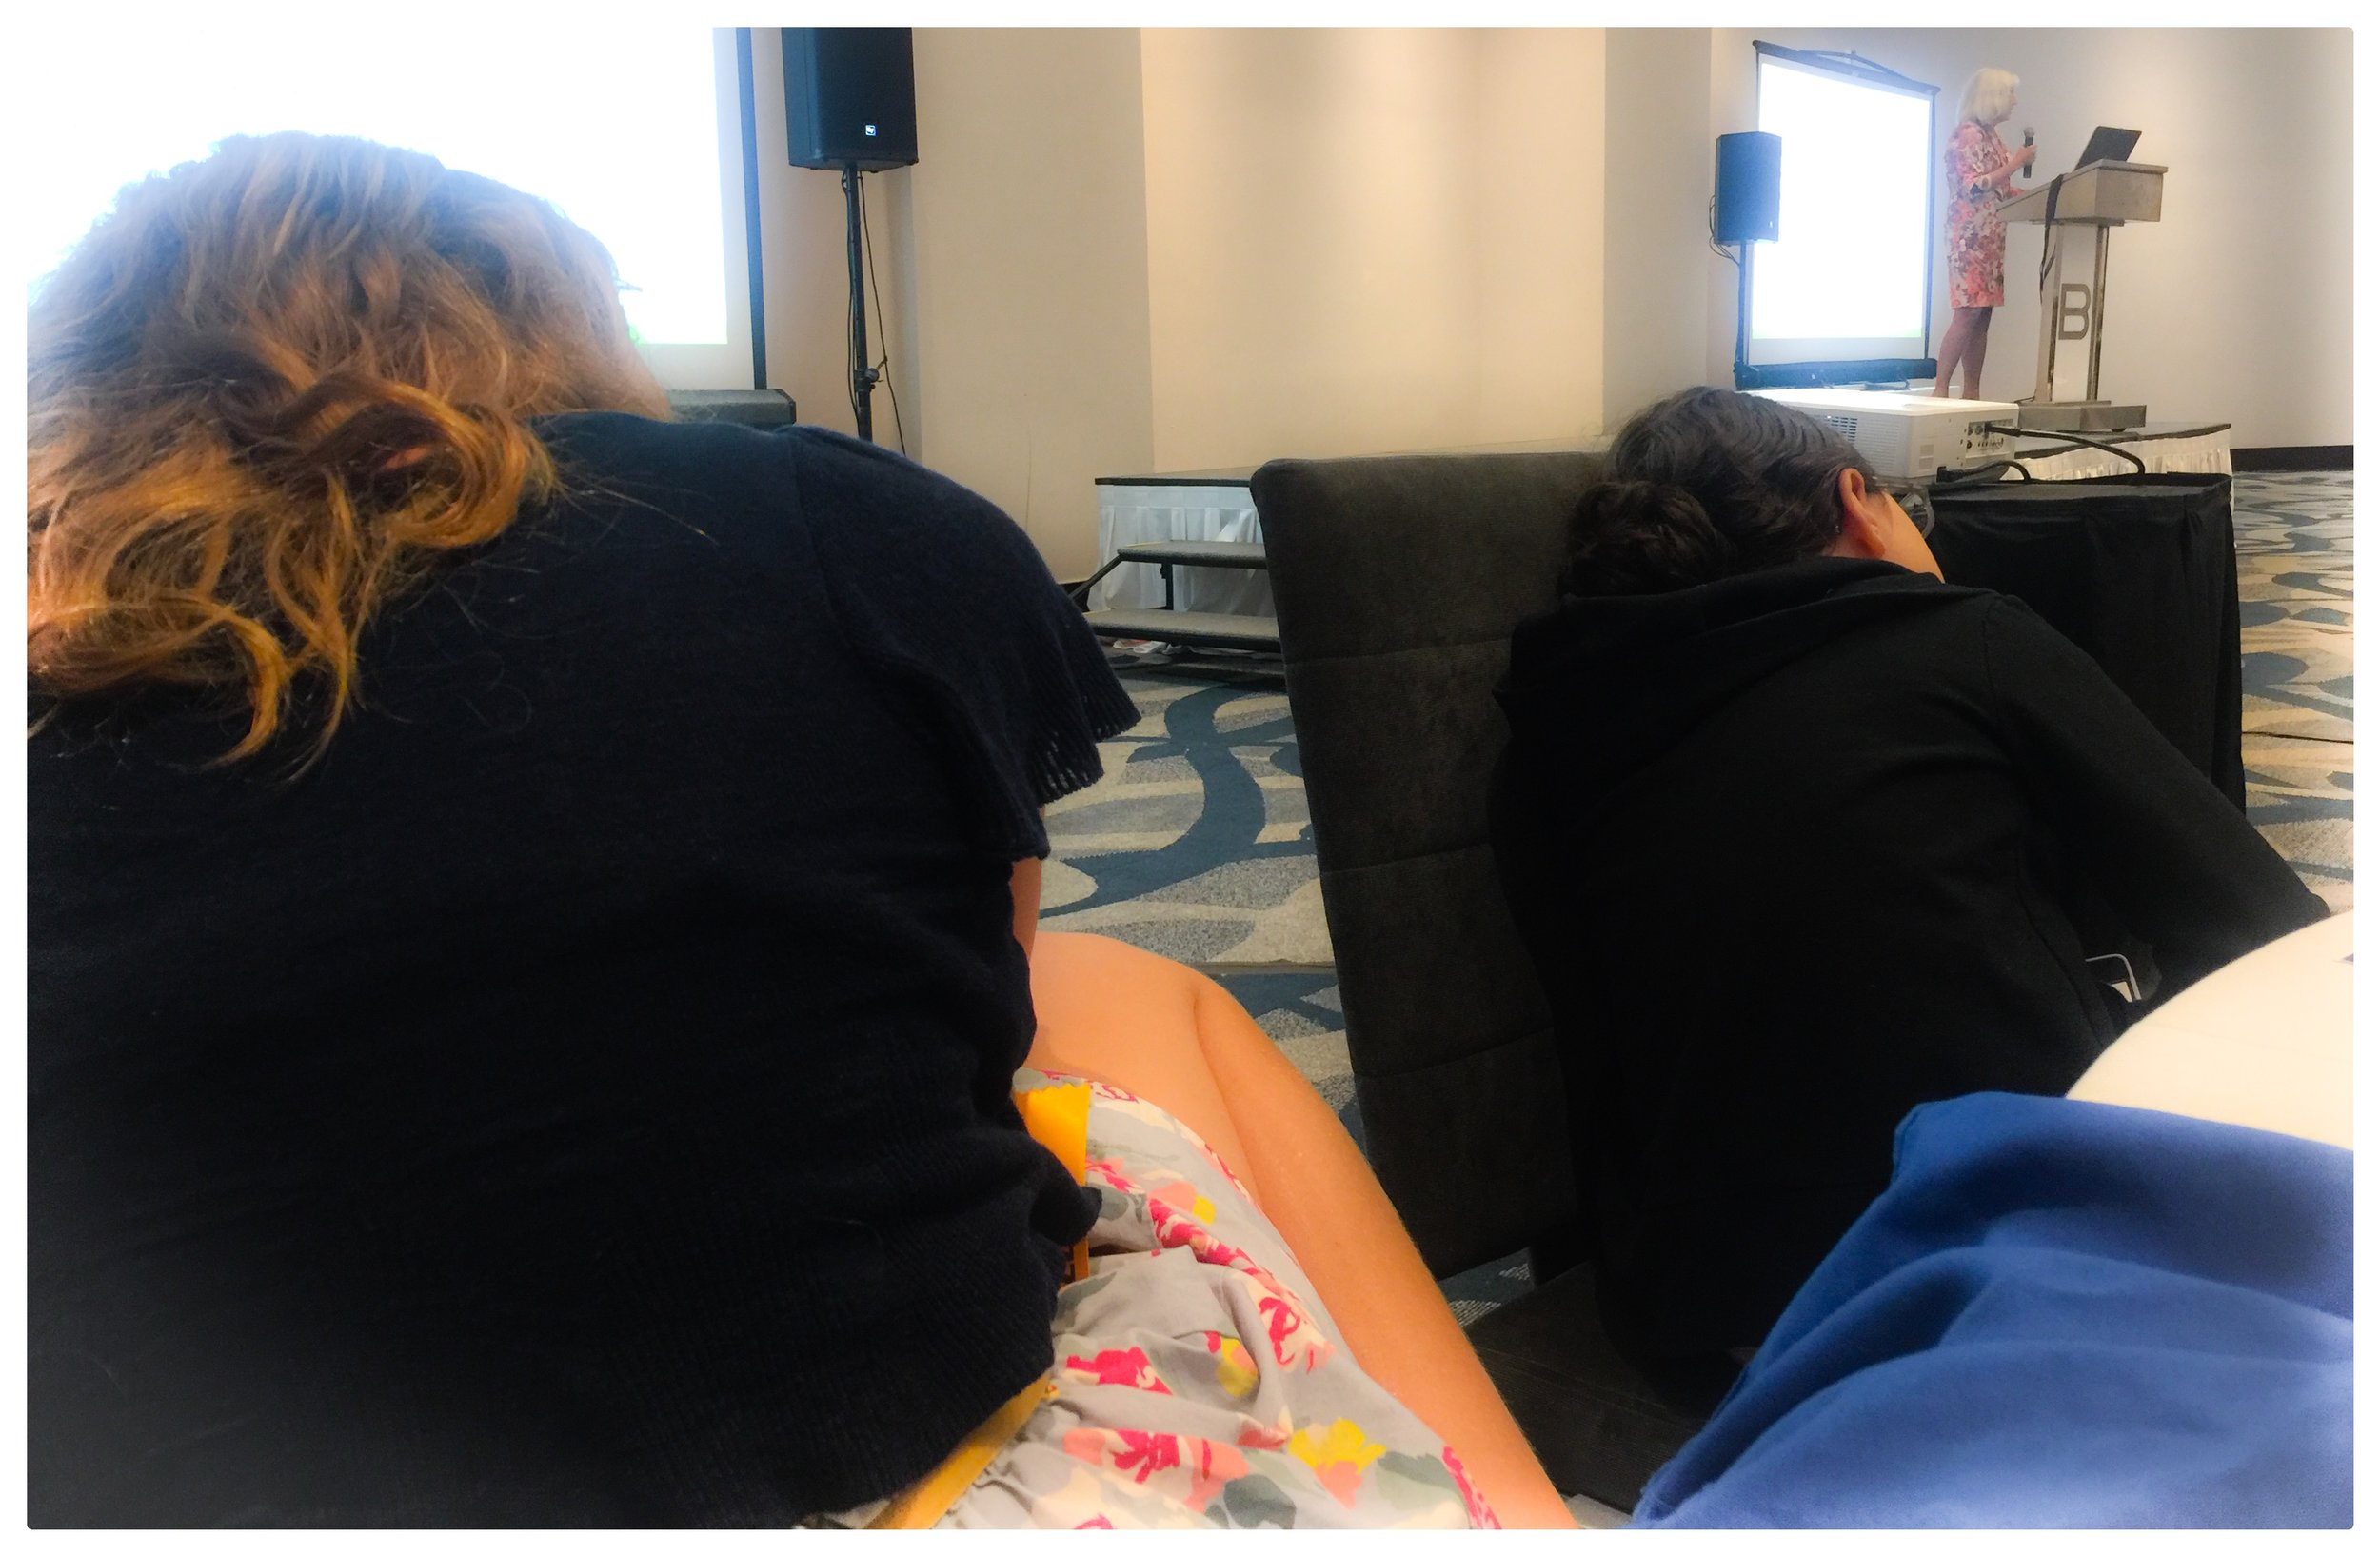 Mathilda and her friend who also has Narcolepsy both fell asleep during the key note address.